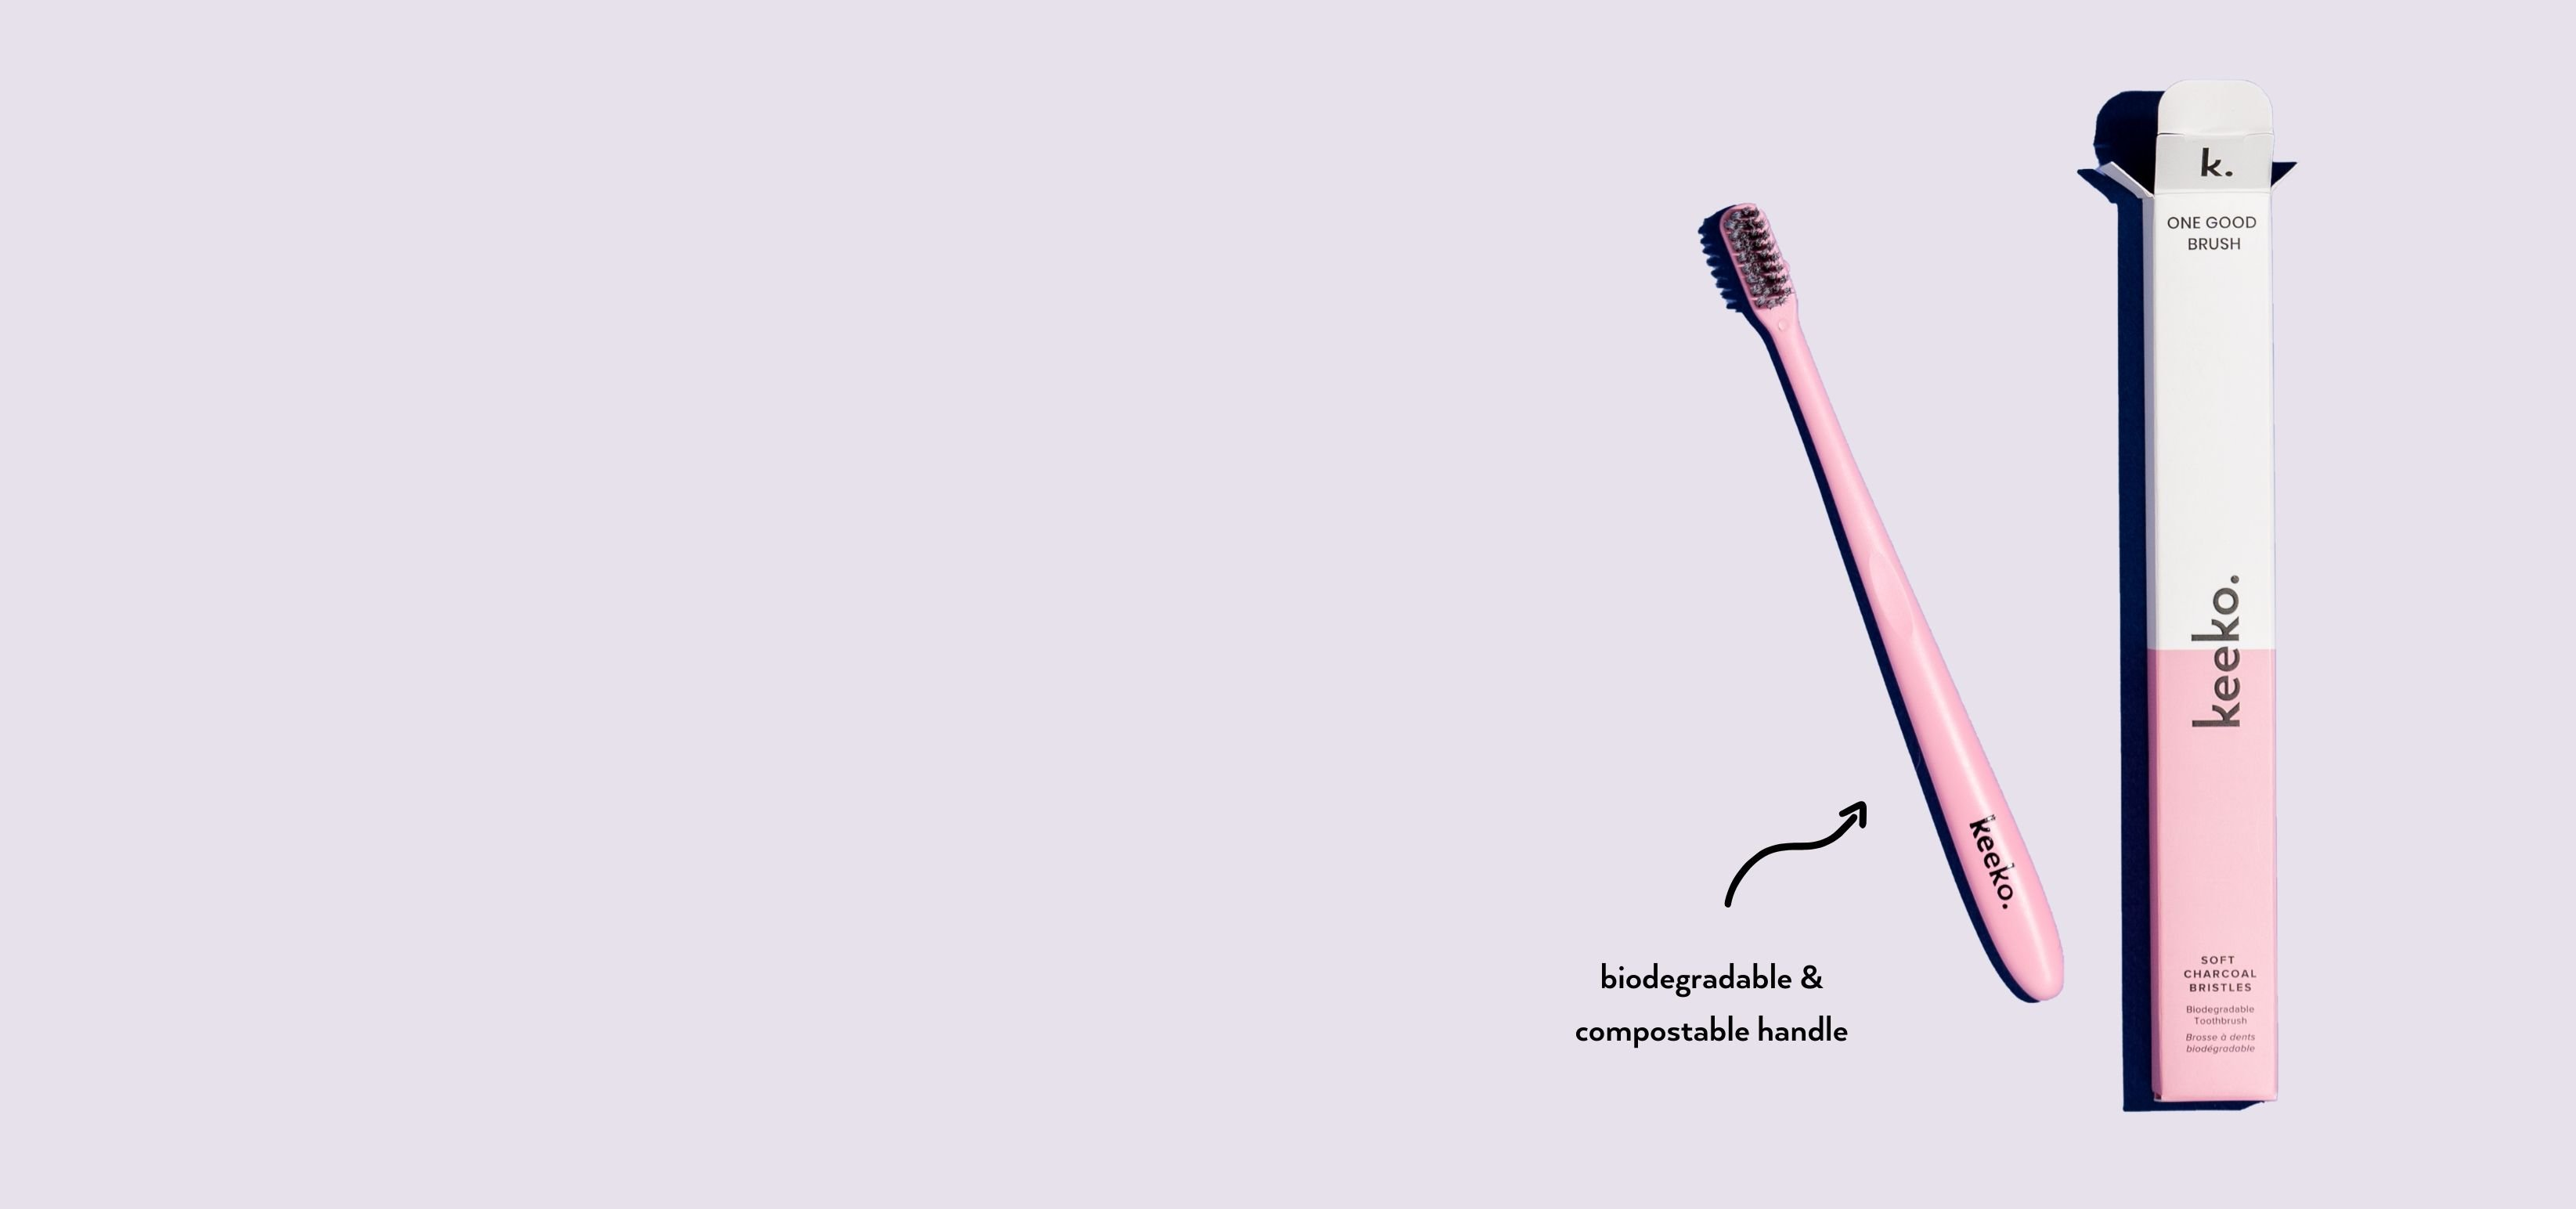 One Good Brush - Biodegradable Toothbrush